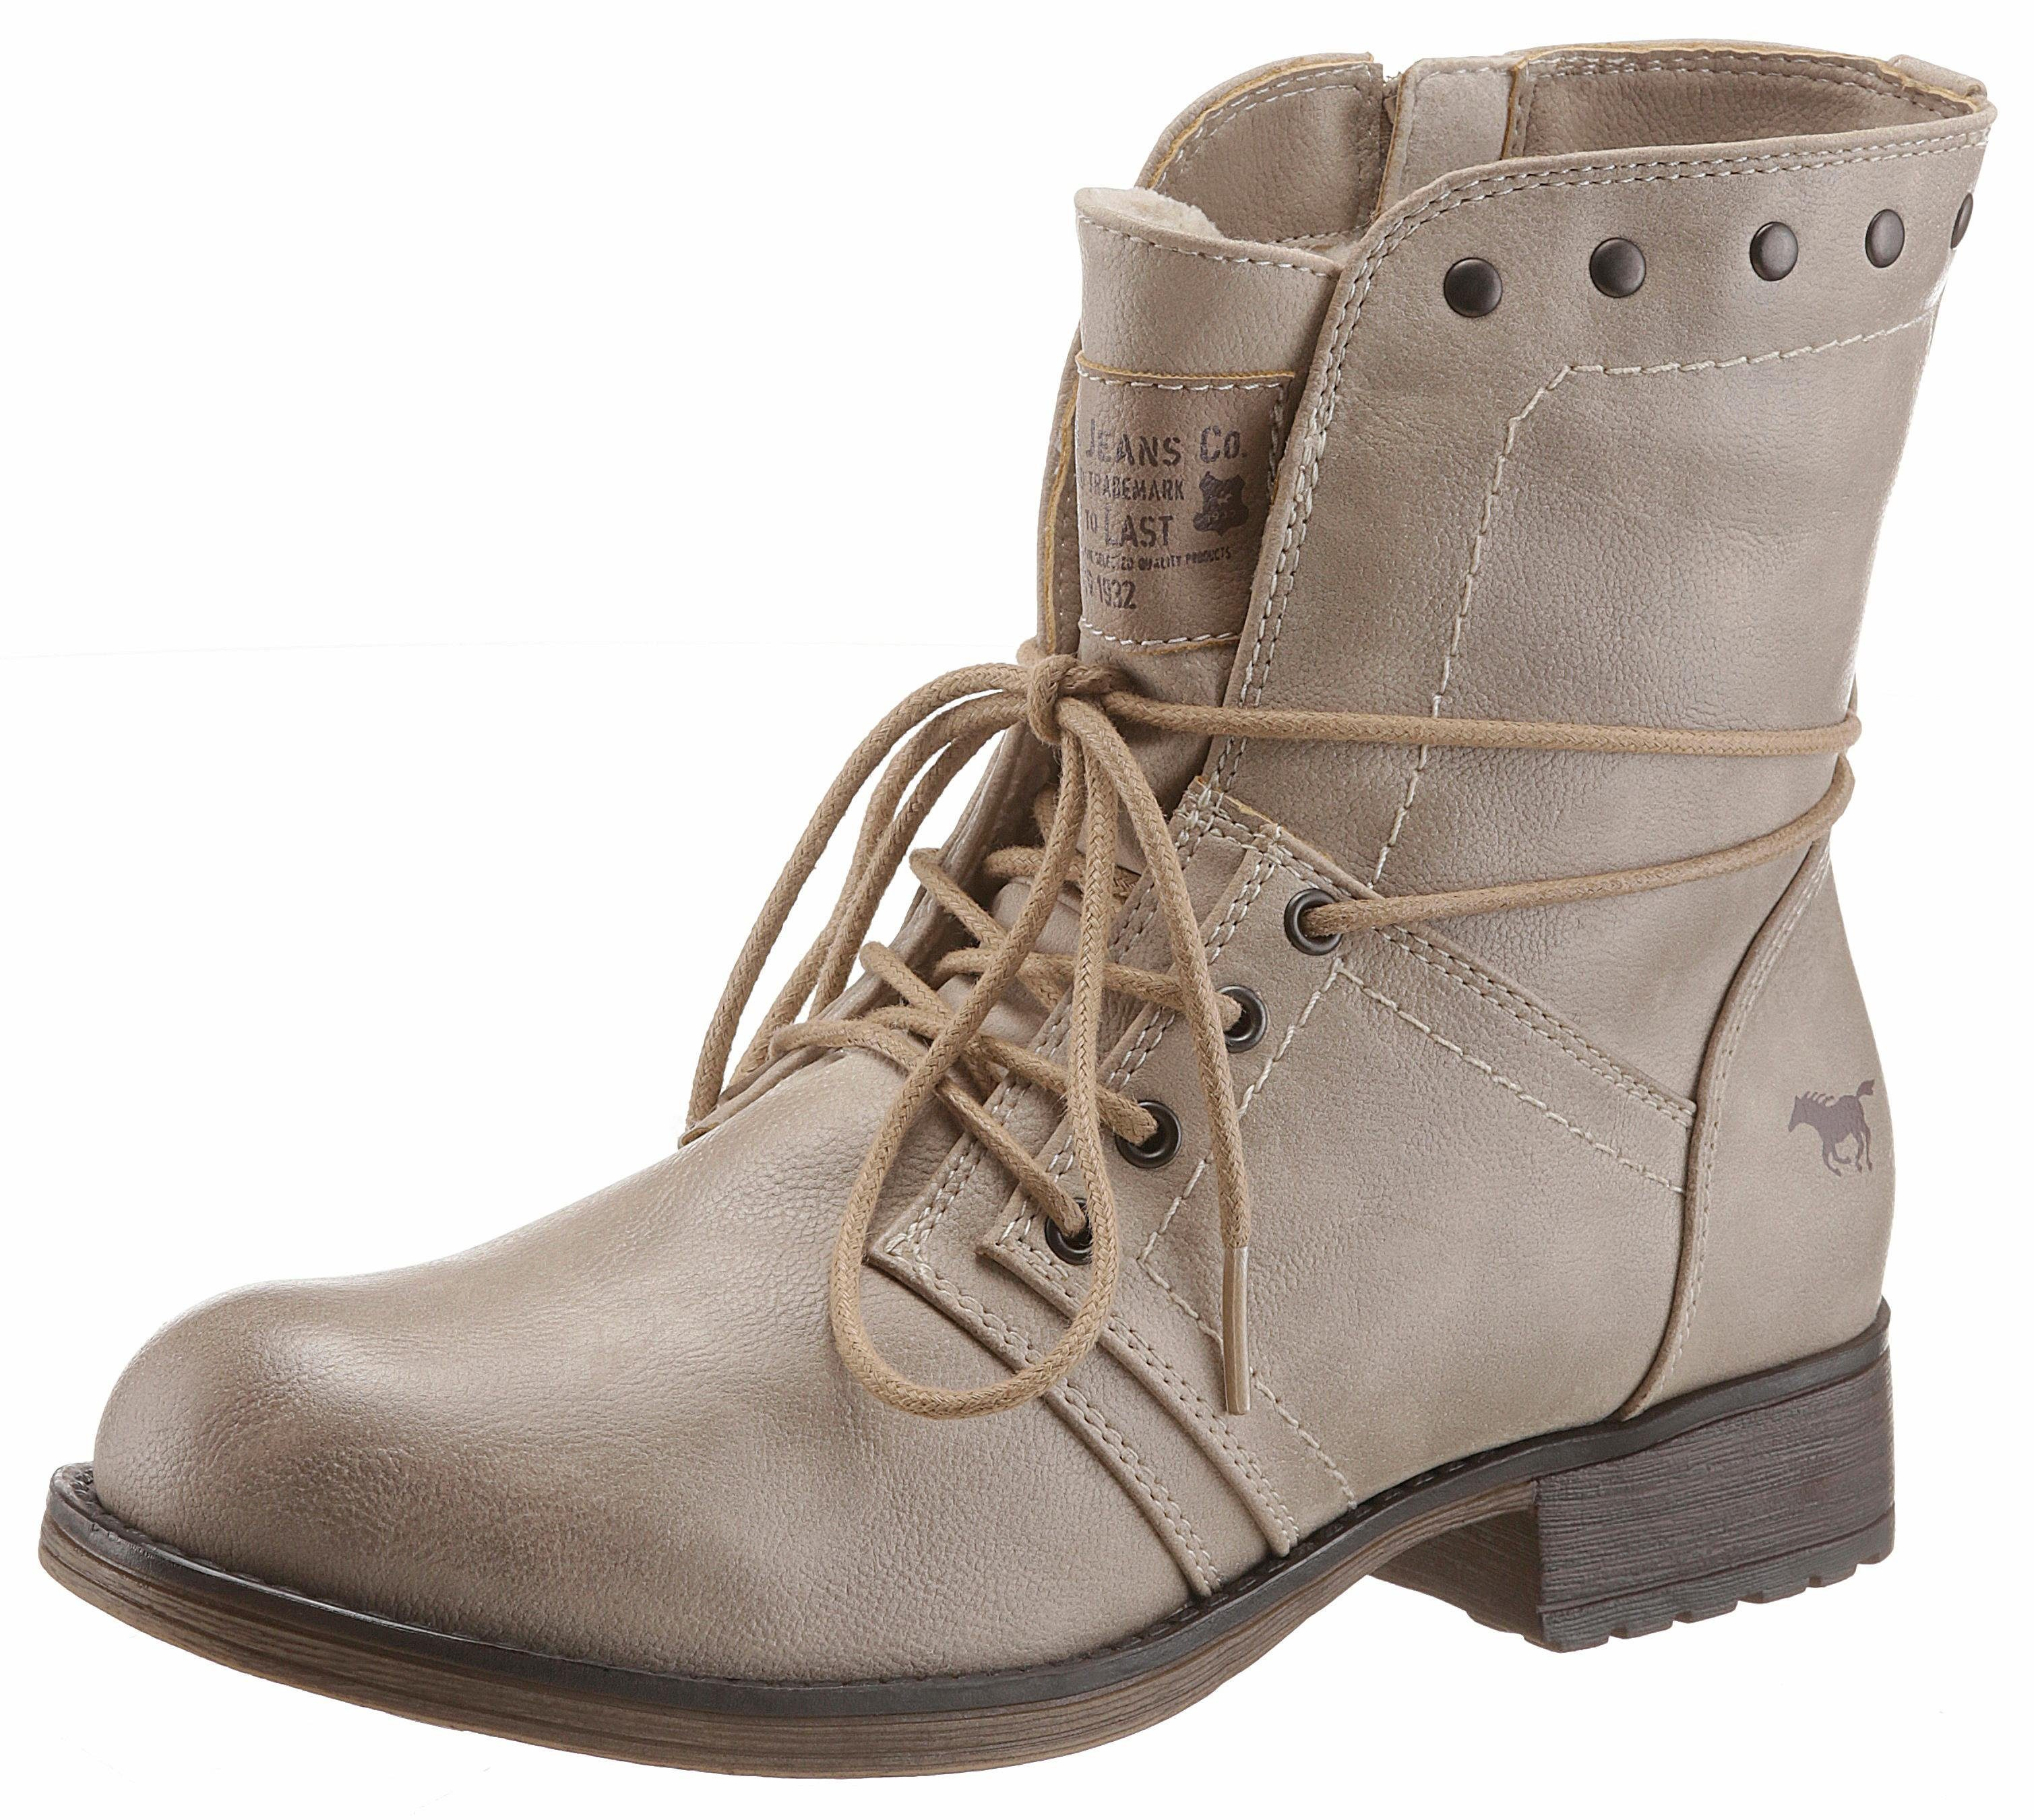 Chaussures Mustang Haut Chaussures À Lacets 2ePLa